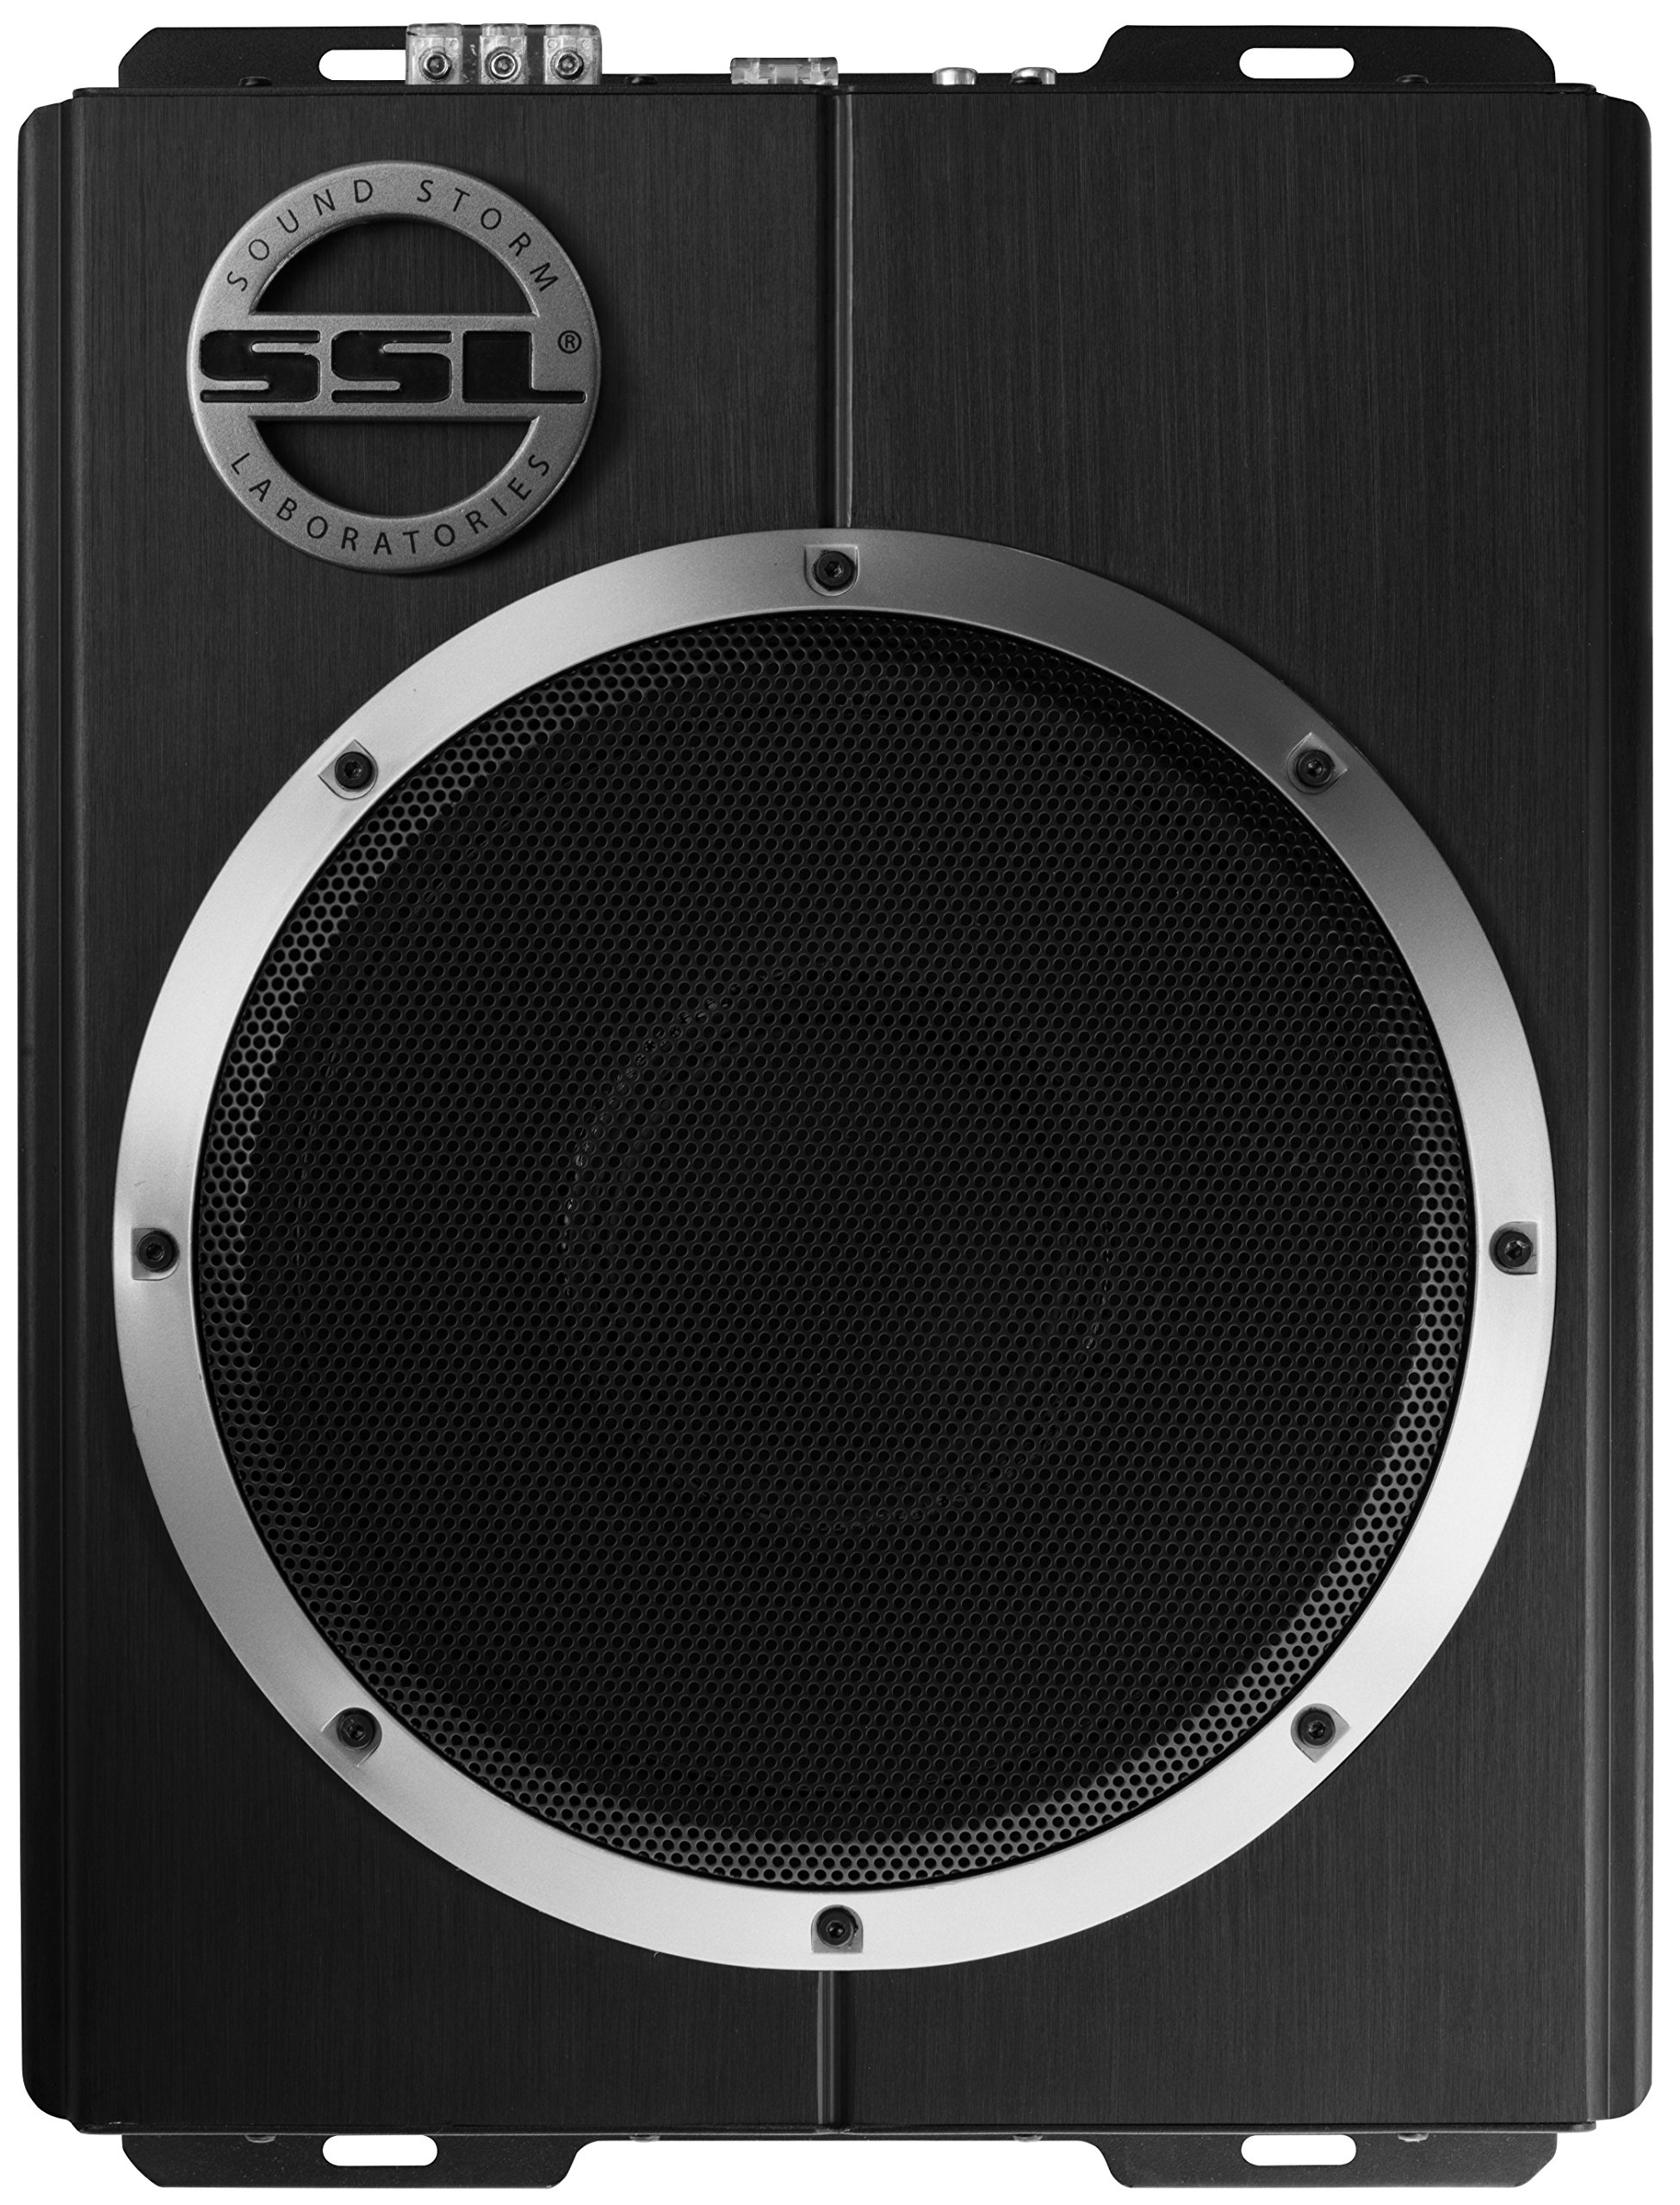 Sound Storm LOPRO10 1200 Watt Low Profile Amplified 10 Inch Car Subwoofer with Remote Subwoofer Control by Sound Storm Laboratories